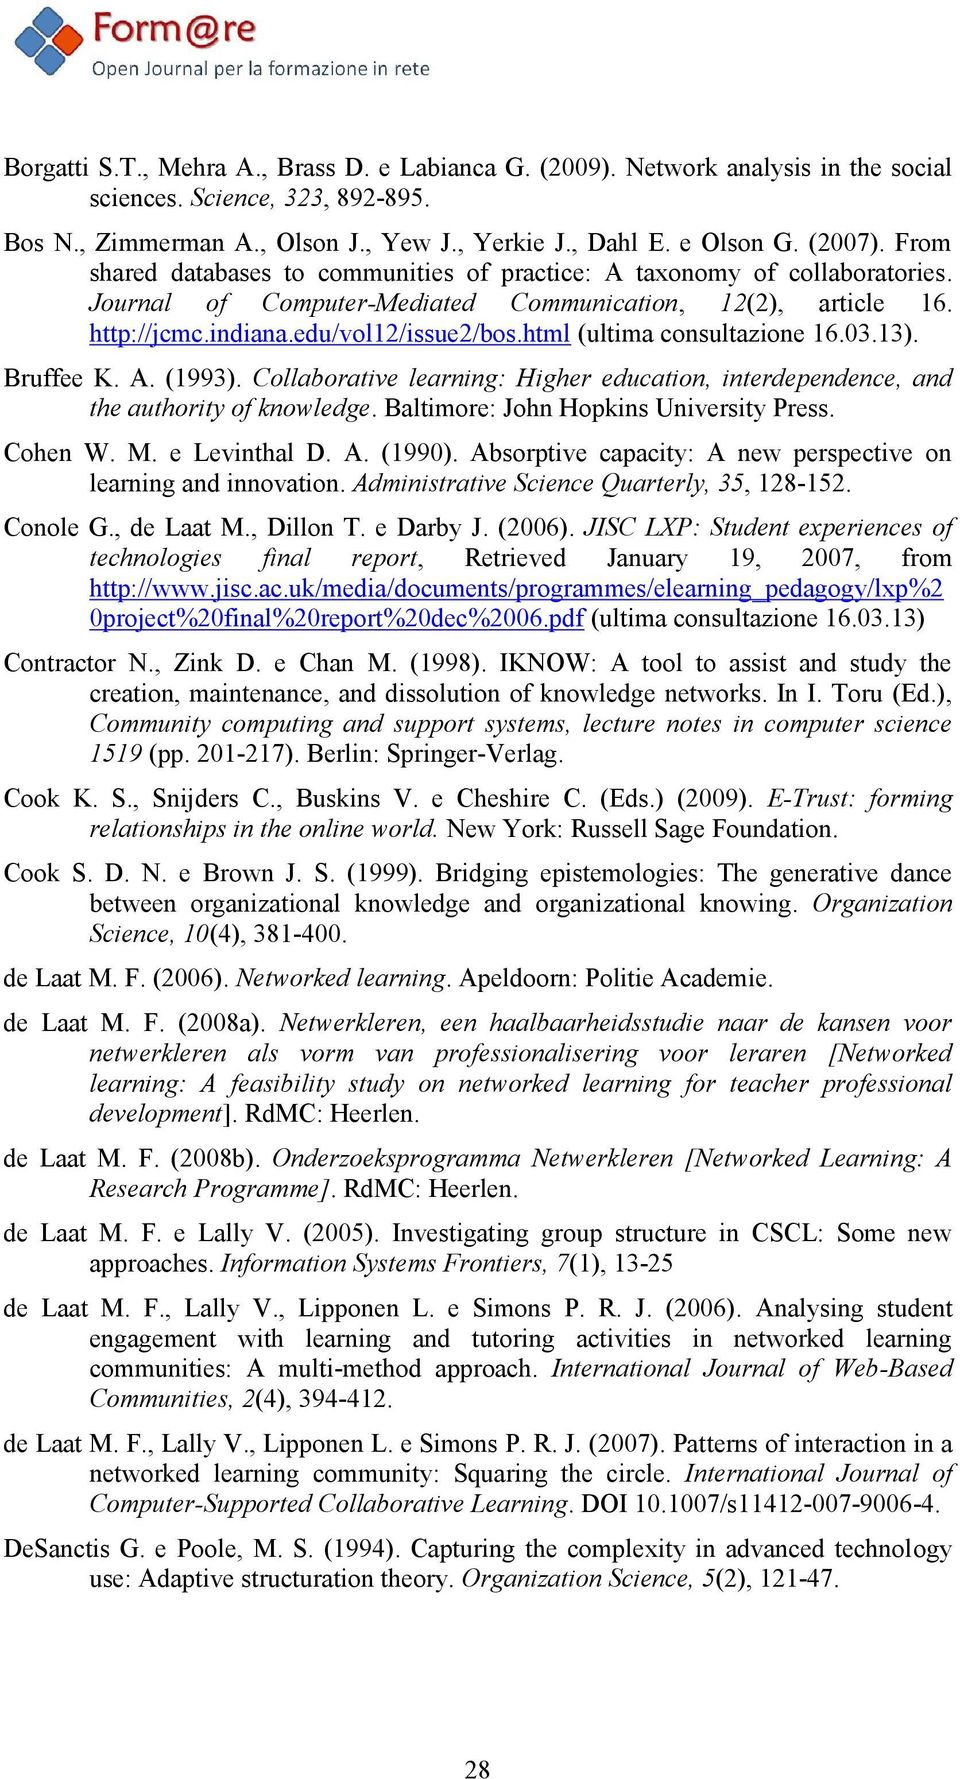 html (ultima consultazione 16.03.13). Bruffee K. A. (1993). Collaborative learning: Higher education, interdependence, and the authority of knowledge. Baltimore: John Hopkins University Press.